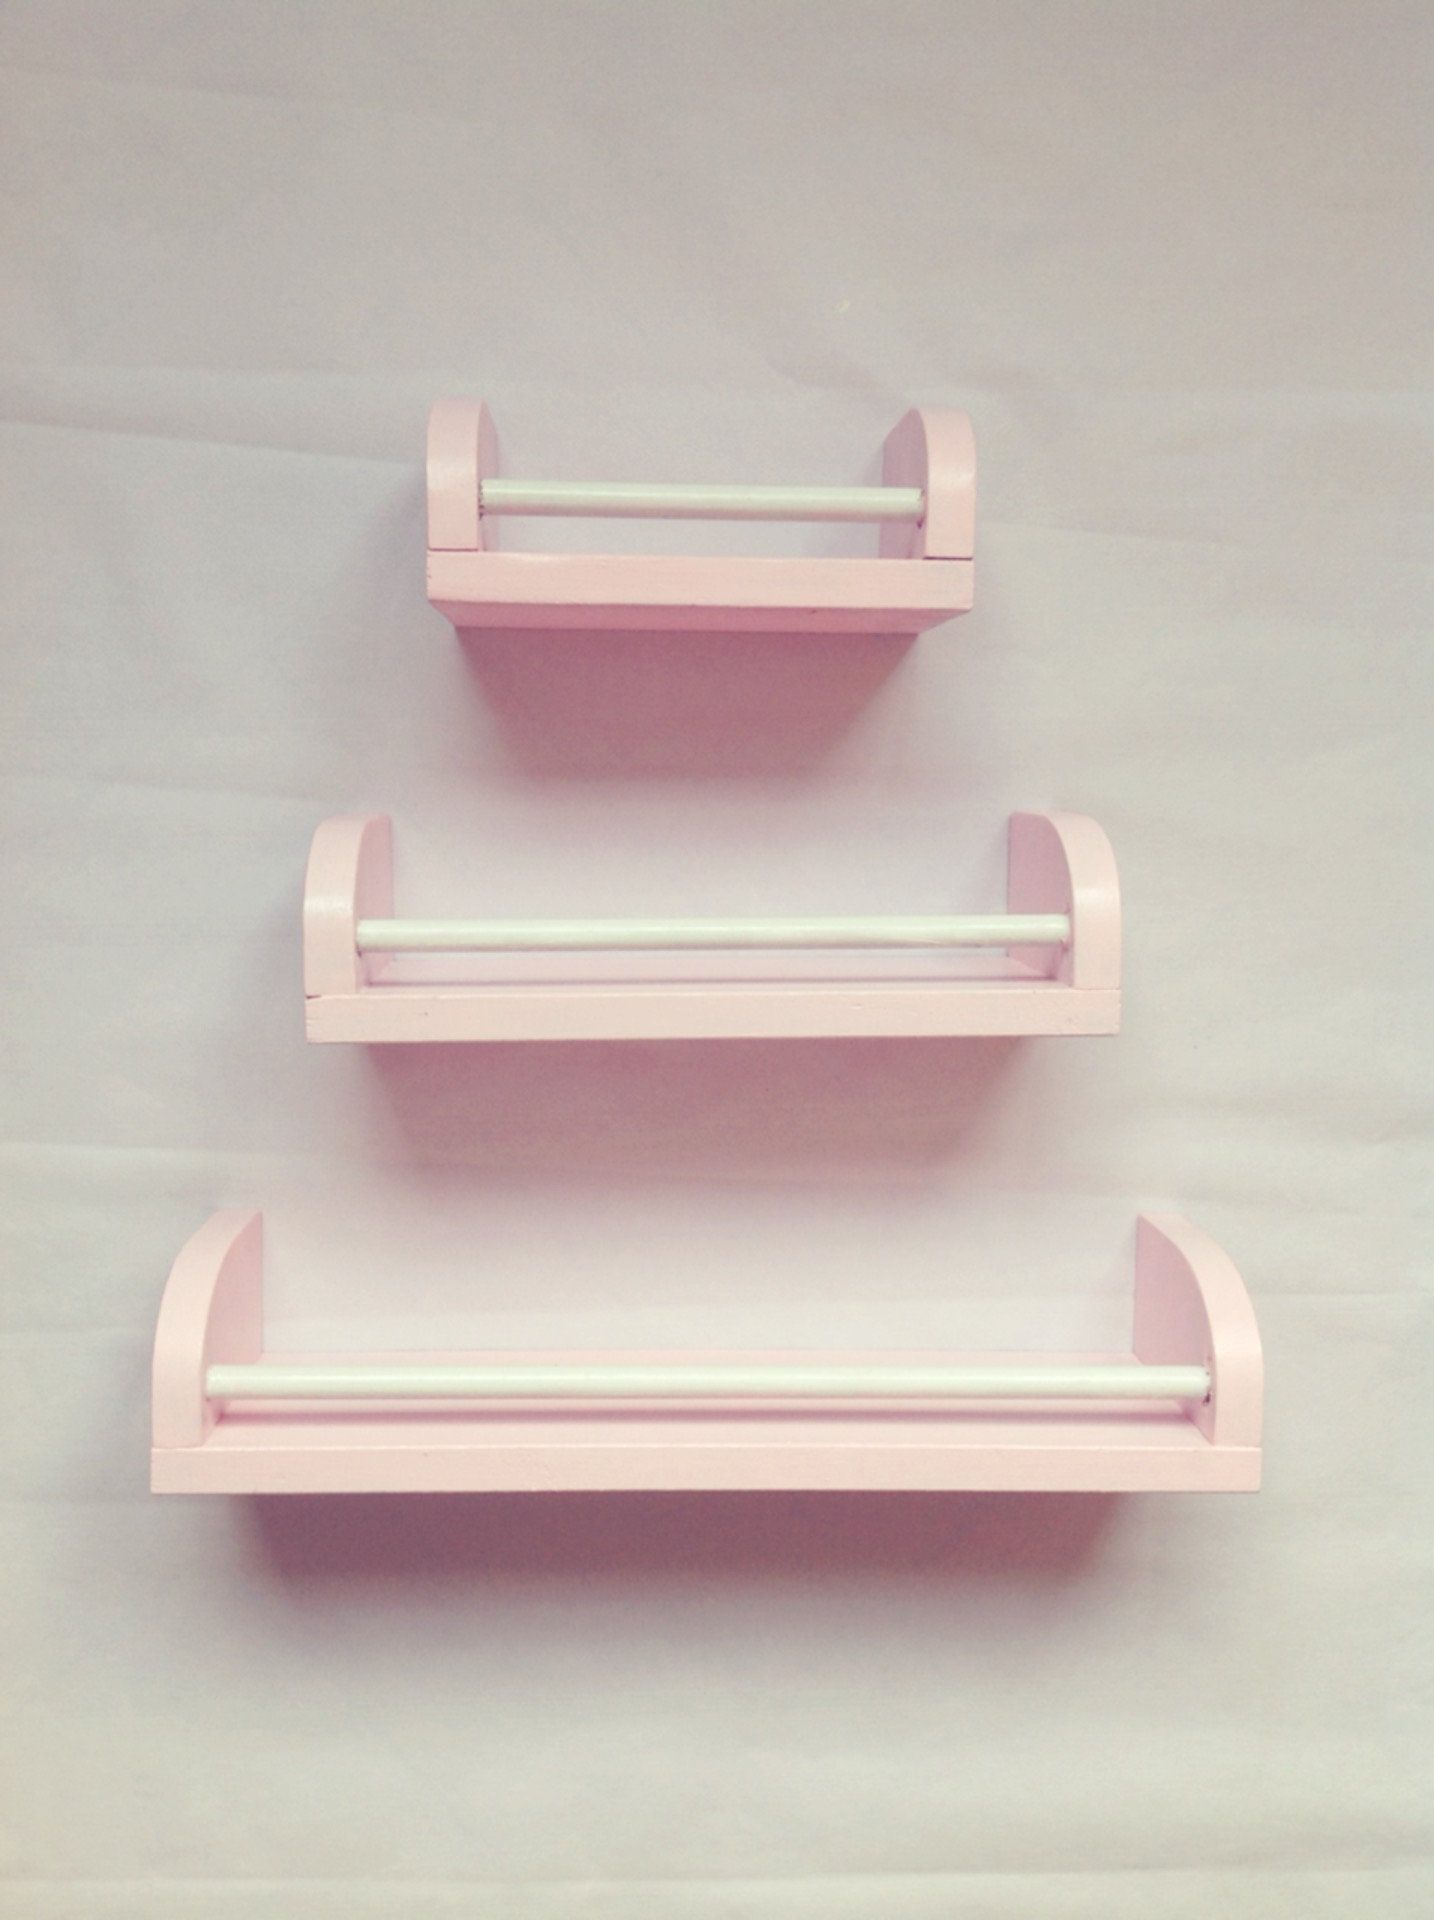 Set Of 3 Pink And White Floating Shelves Decorative Wall Etsy In